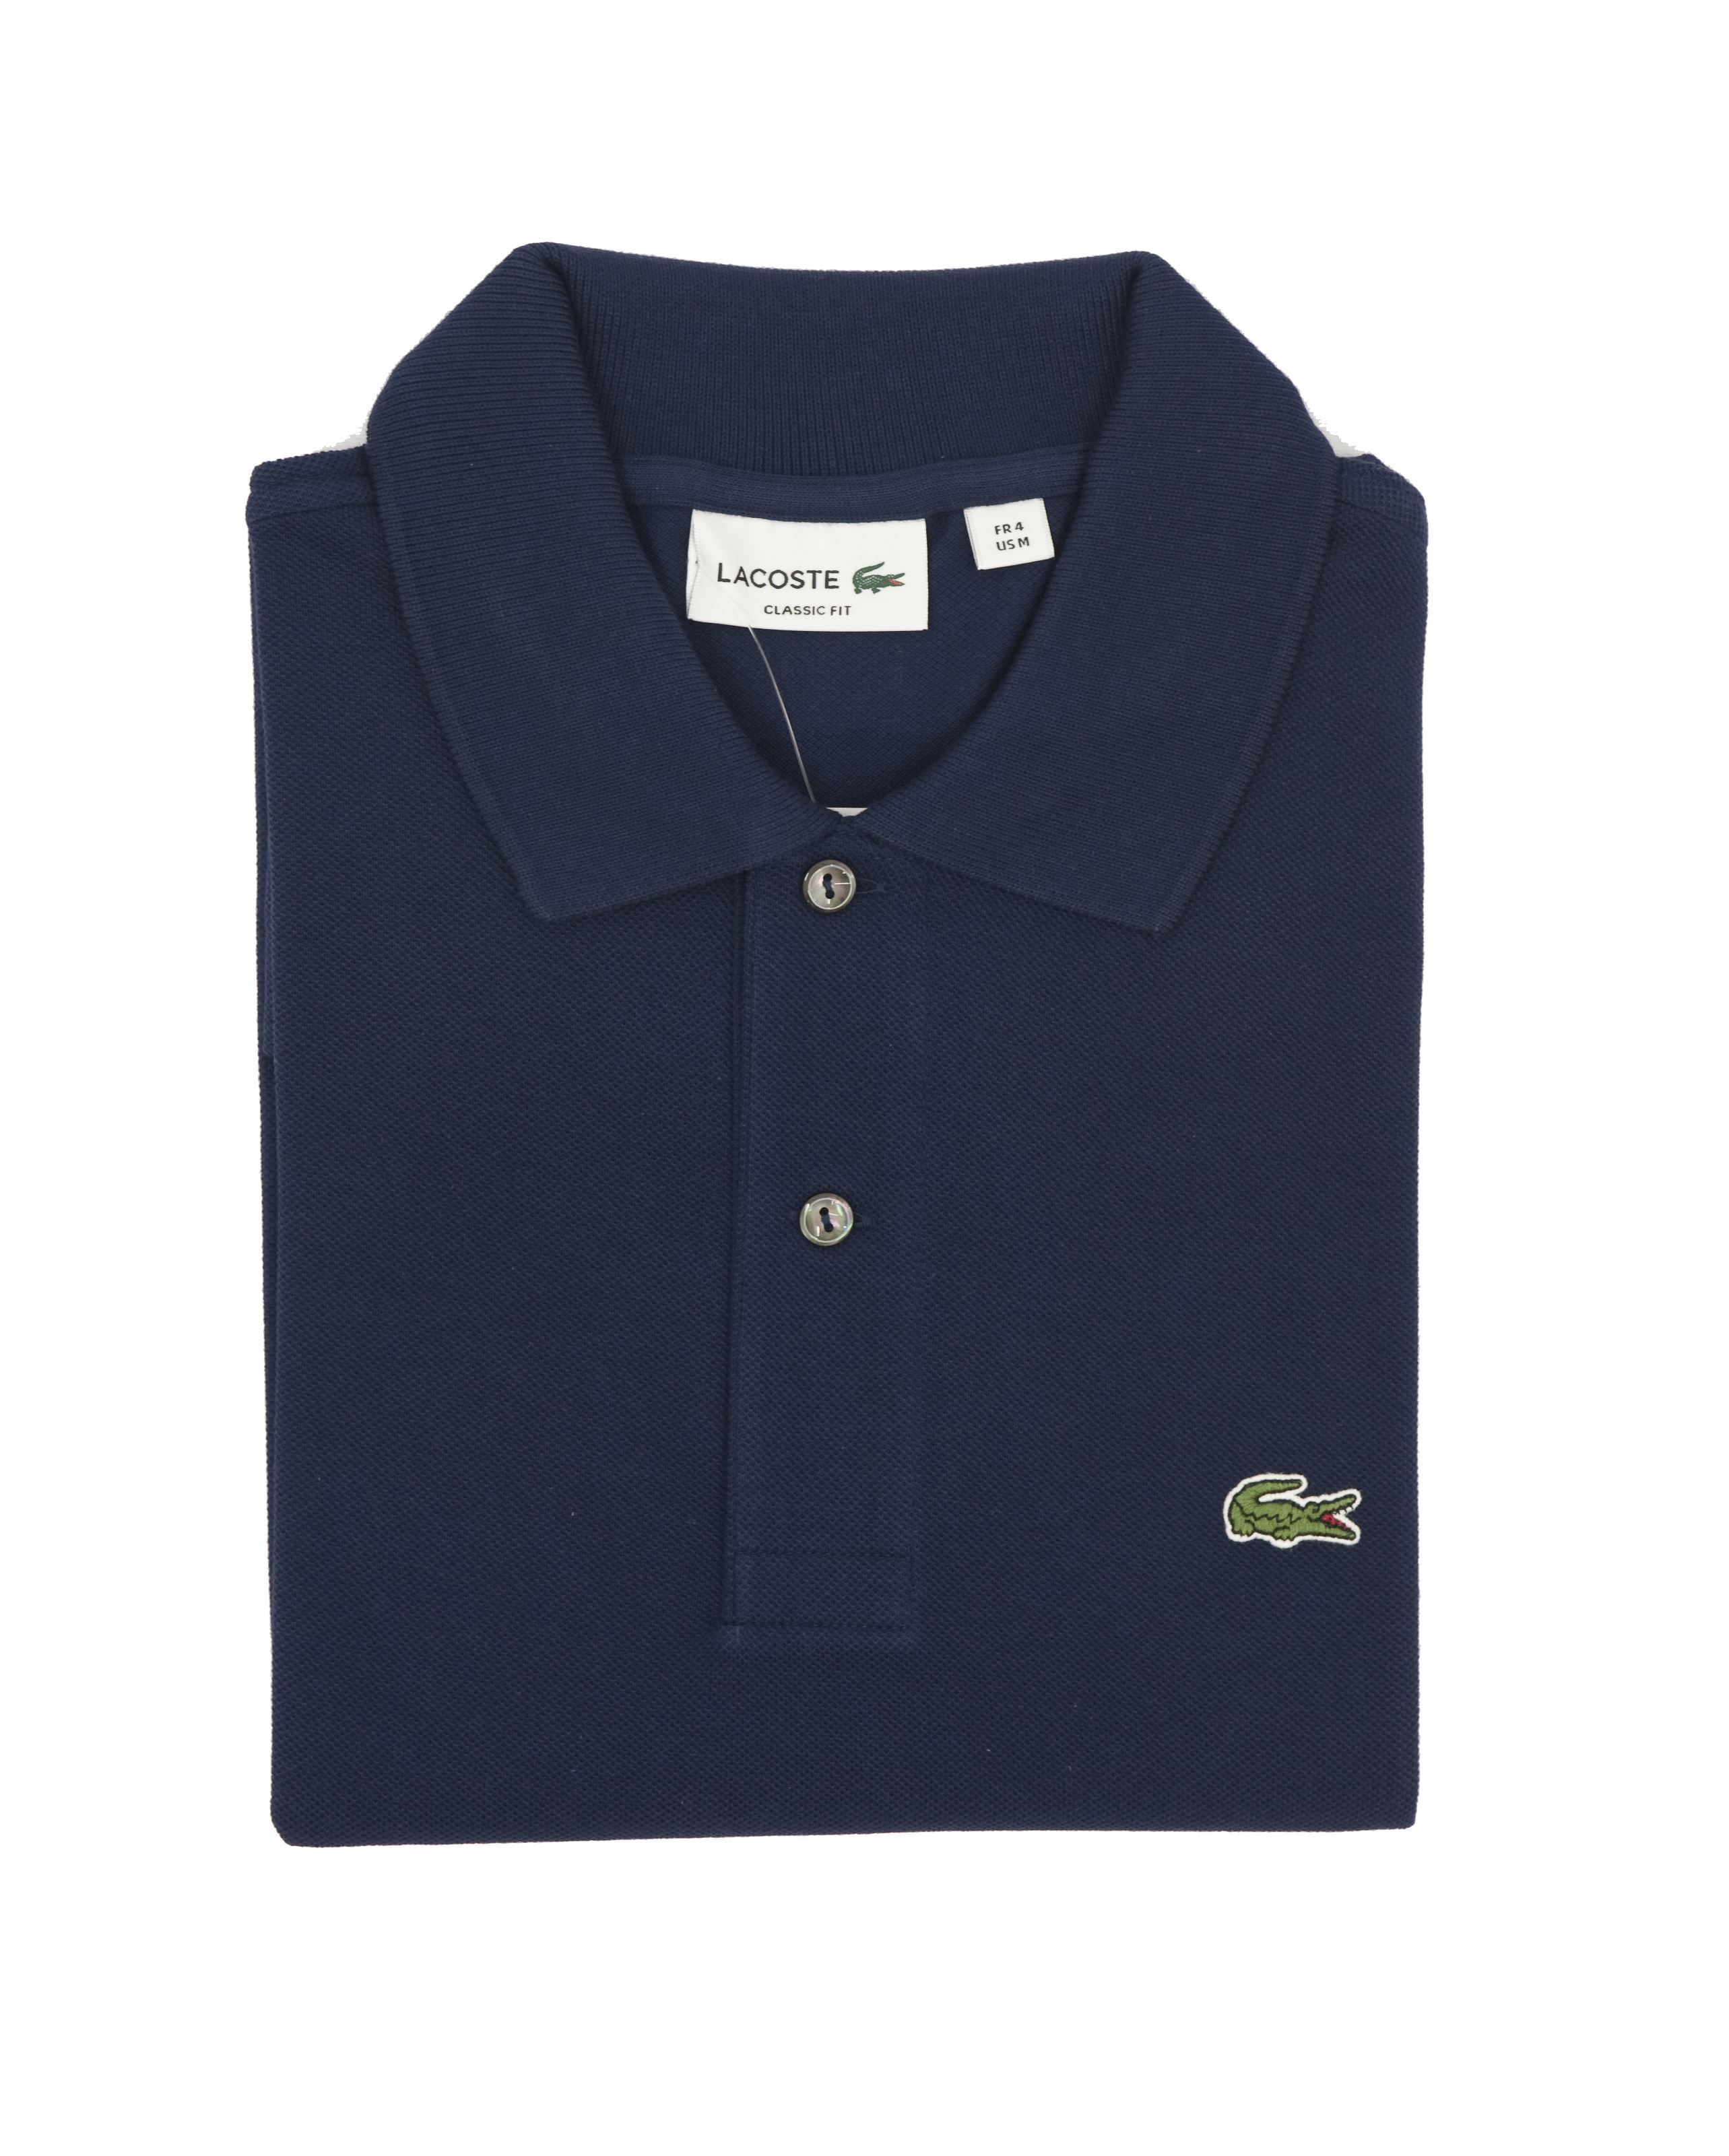 82863c118f7 Lacoste polo ph4012 marine Slim fit - Floccari Store